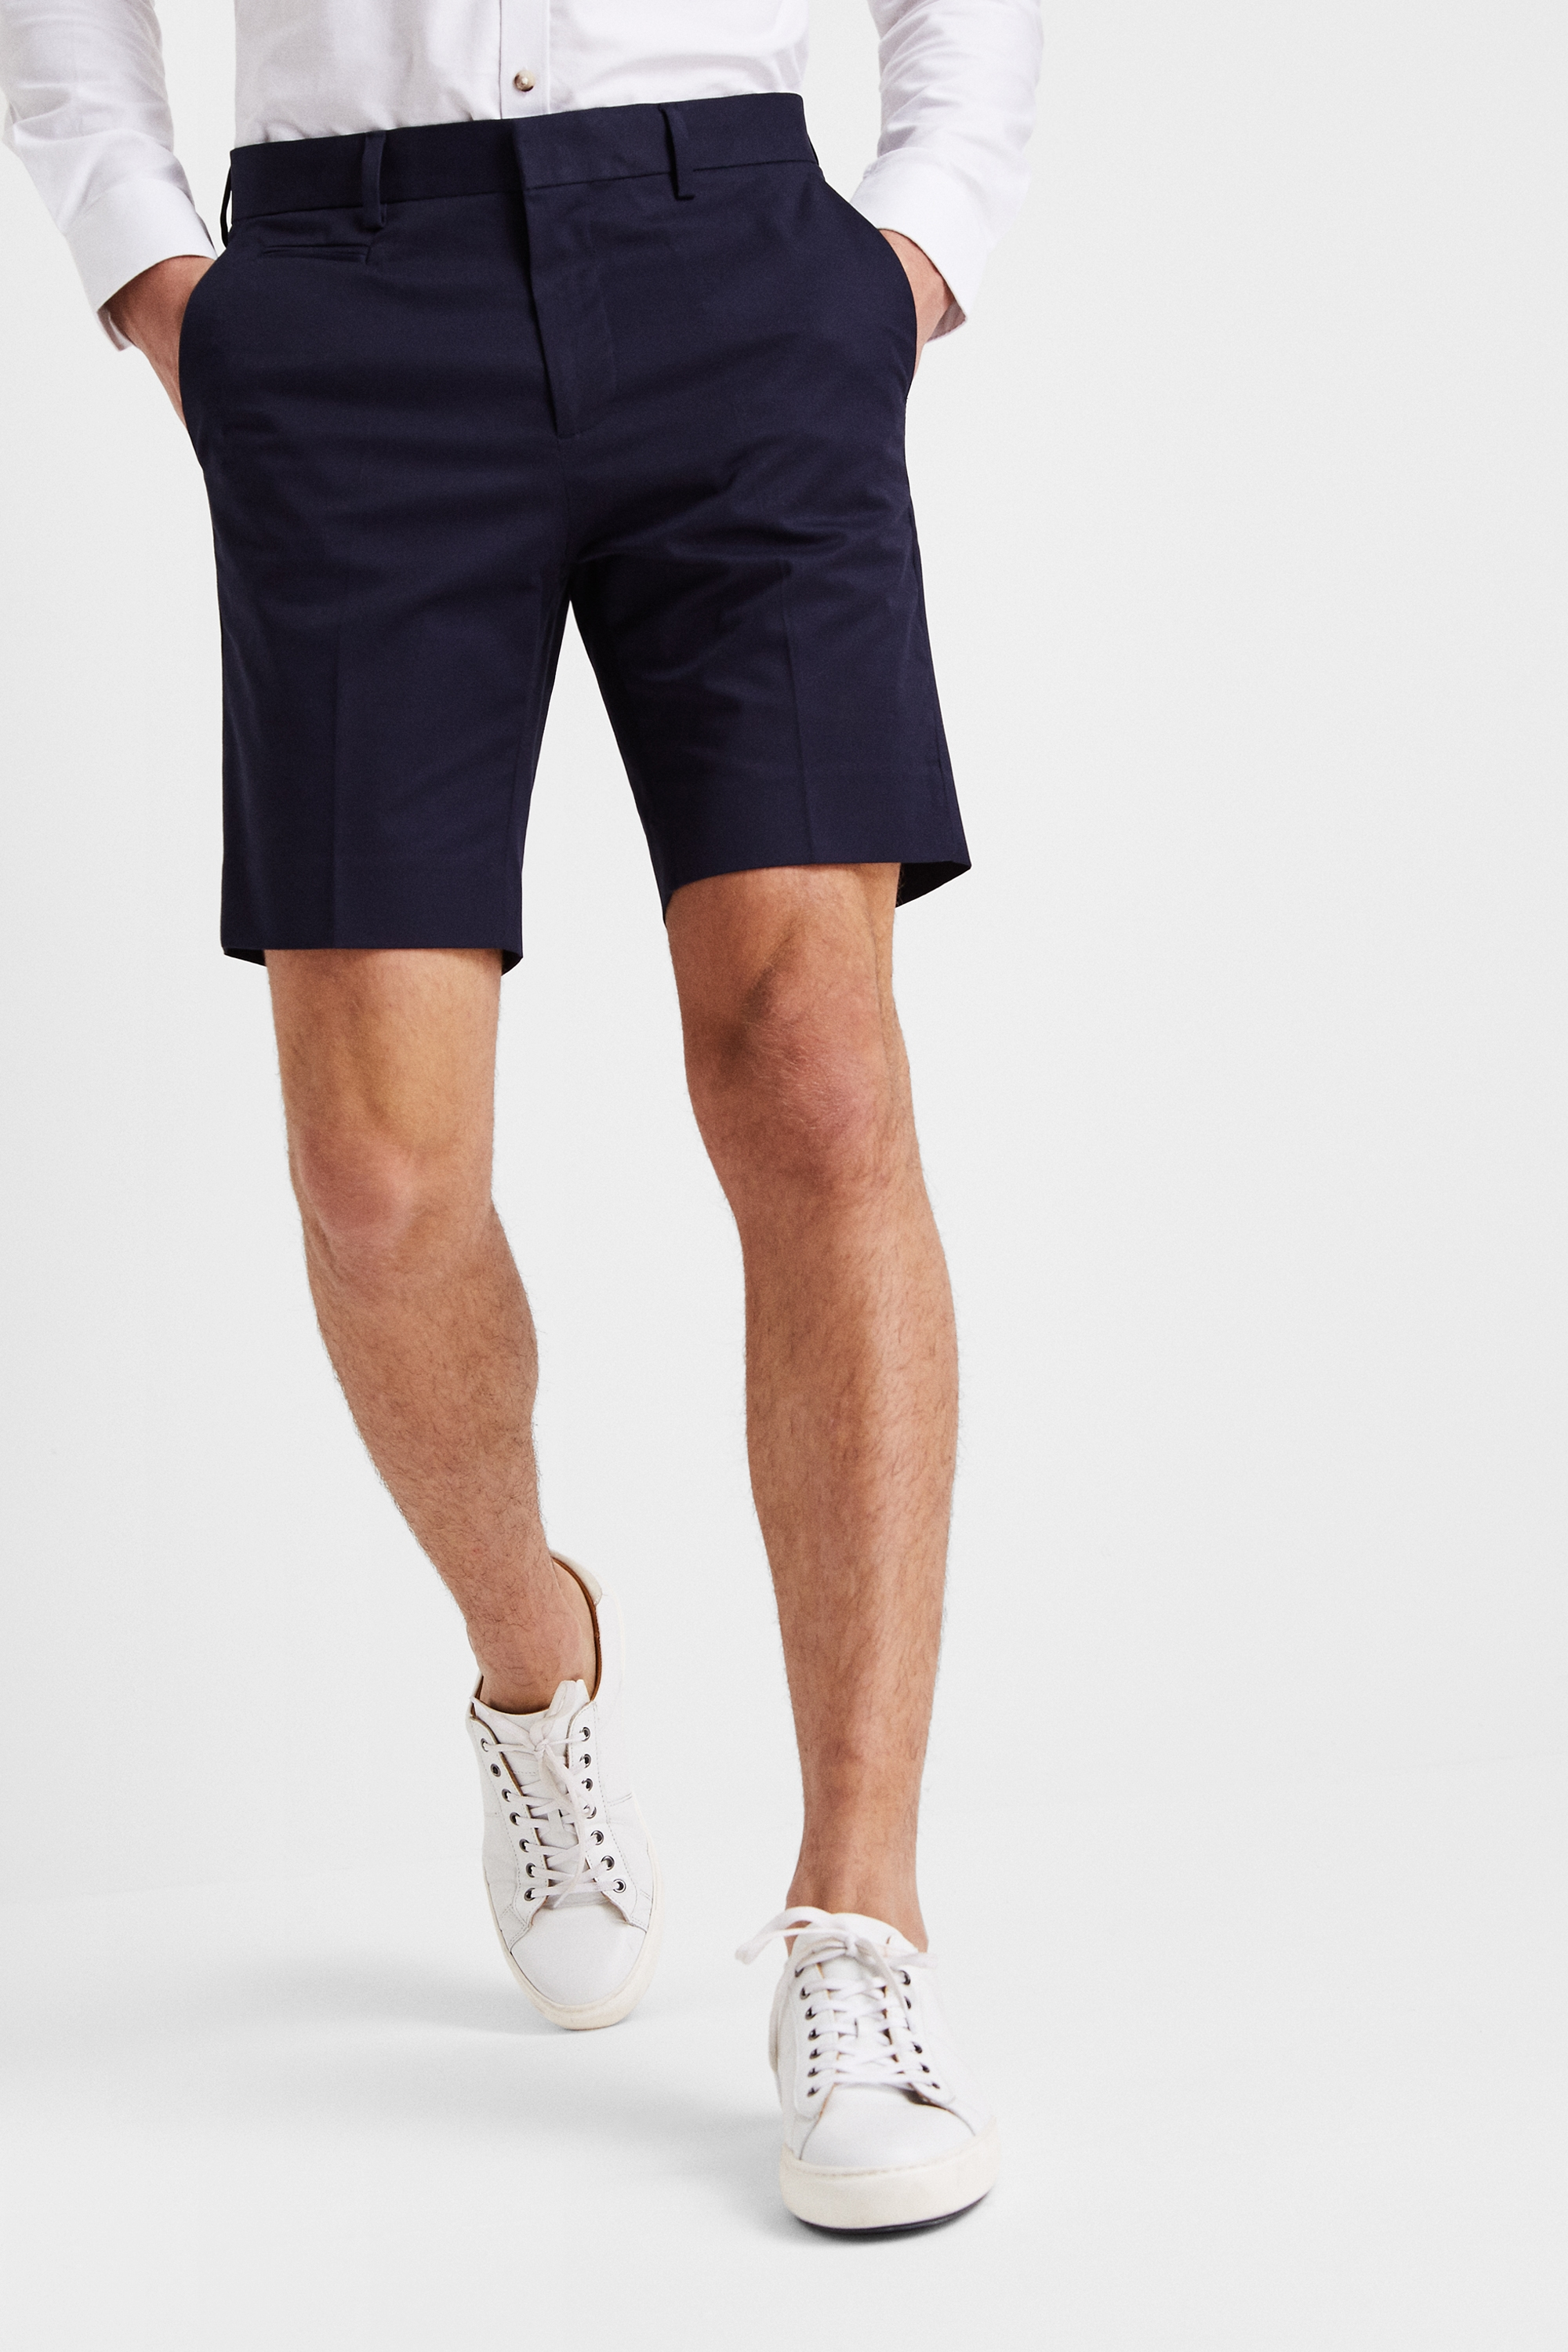 936e9852a9 Moss London Slim Fit Navy Stretch Chino Short